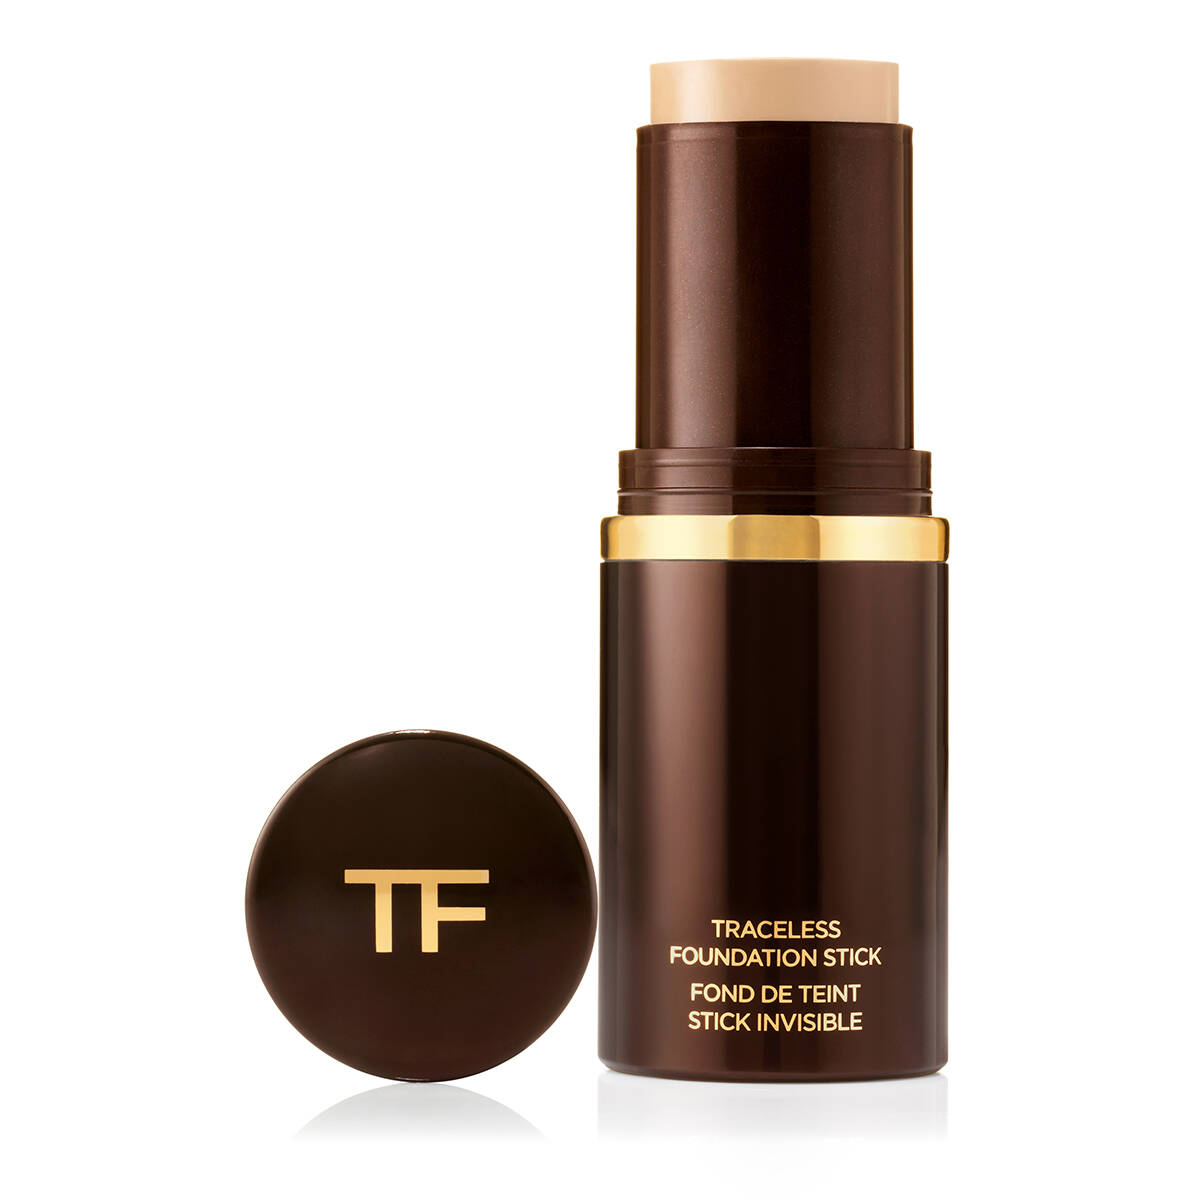 TOM FORD Traceless Foundation Stick (2.0 Buff | 15 g) Make Up, Gesicht, Foundation Cosmetics, Face von TOM FORD